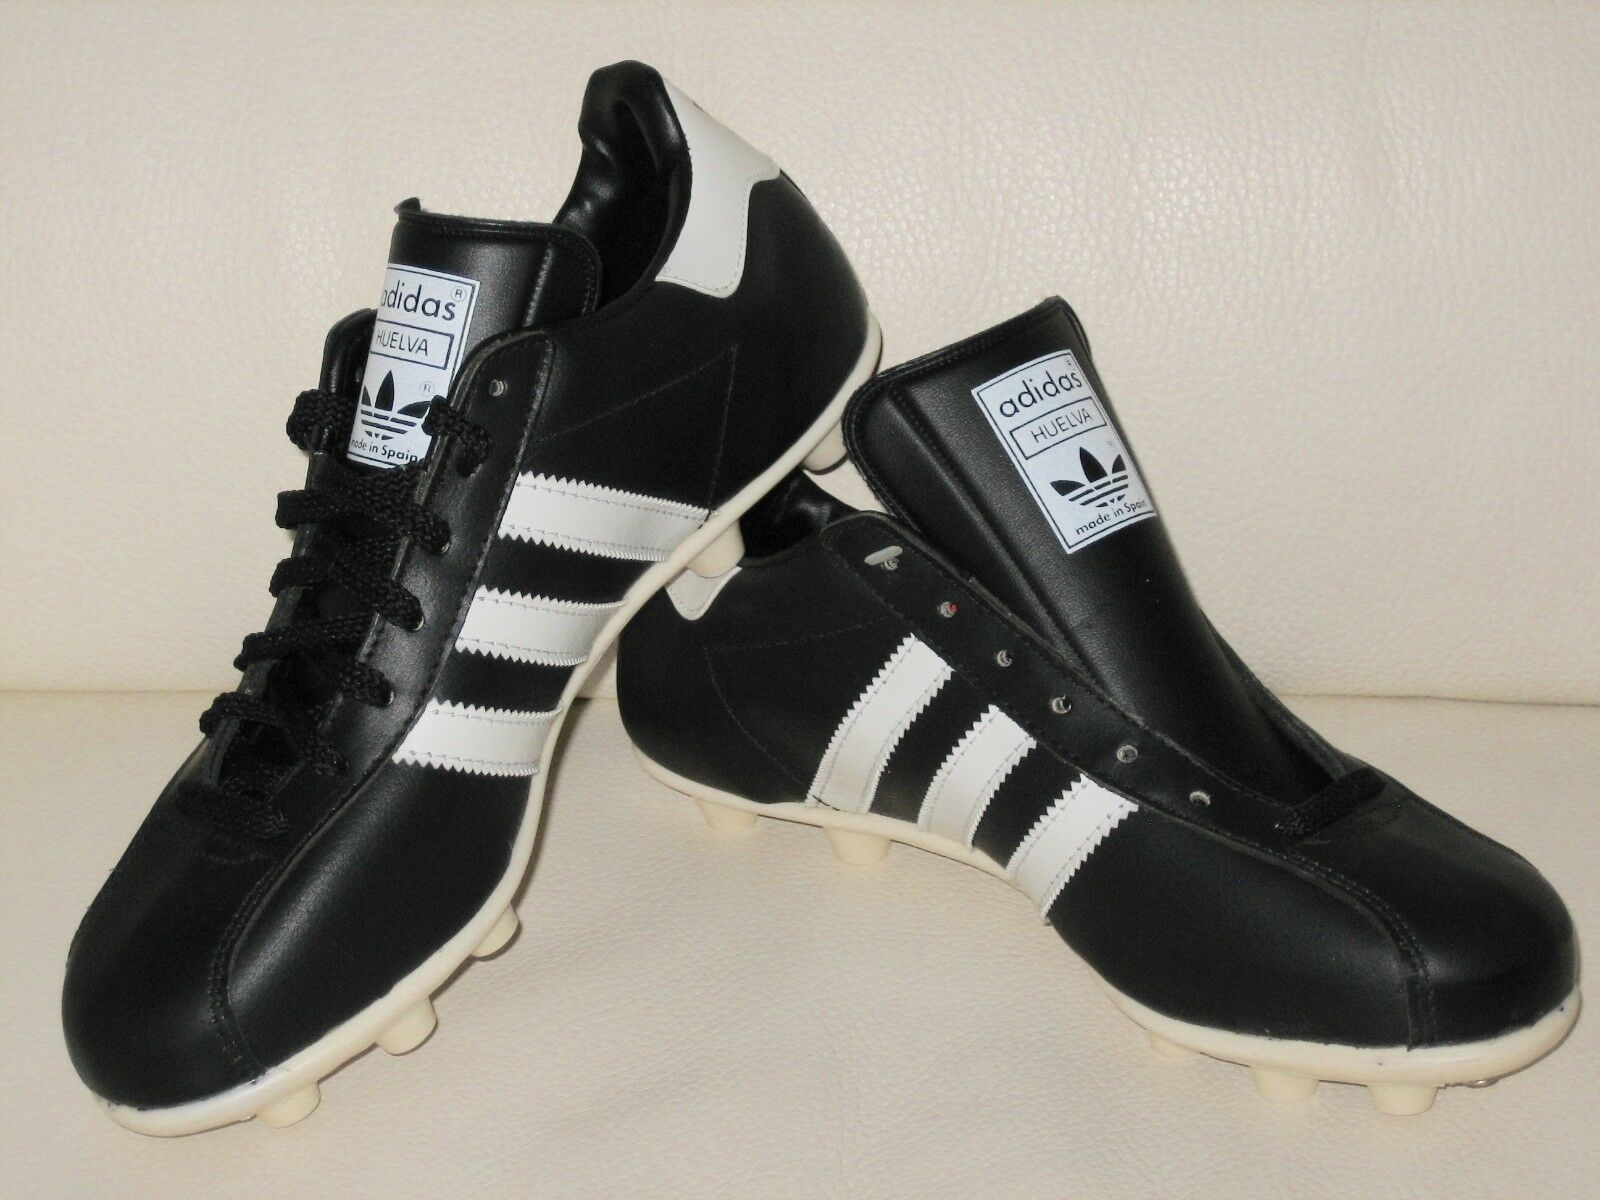 Adidas spain uk 6 80s vintage original soccer football bottes world cup cleats